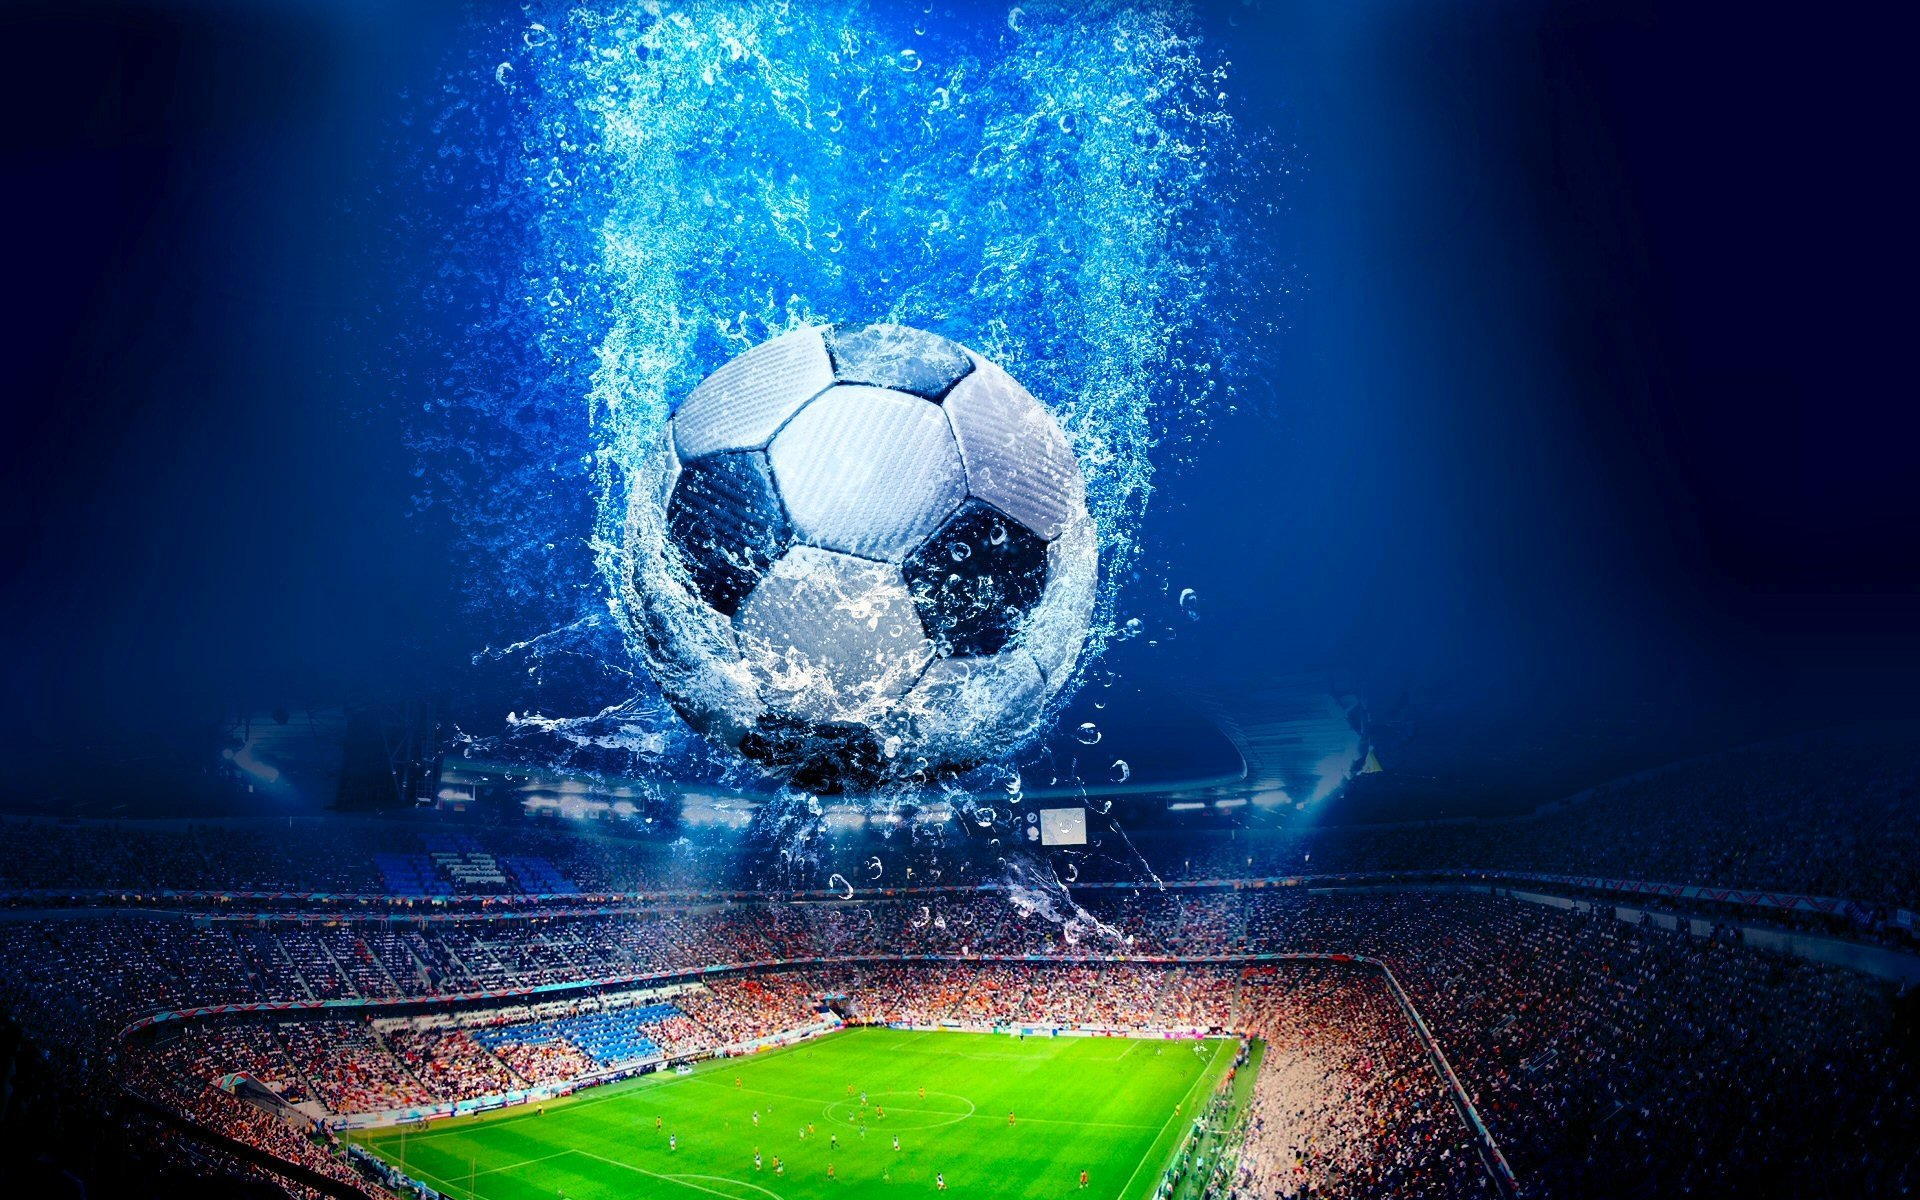 Wallpapers Of Sports